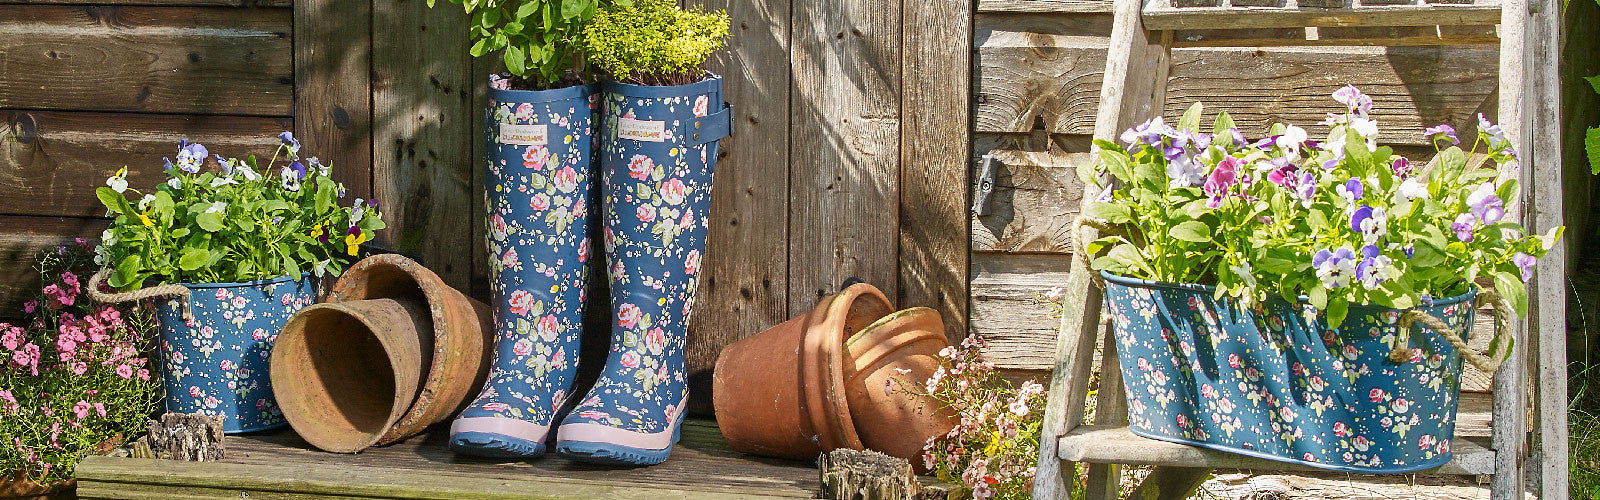 Briers Julie Dodsworth Collections - gorgeous garden gifting